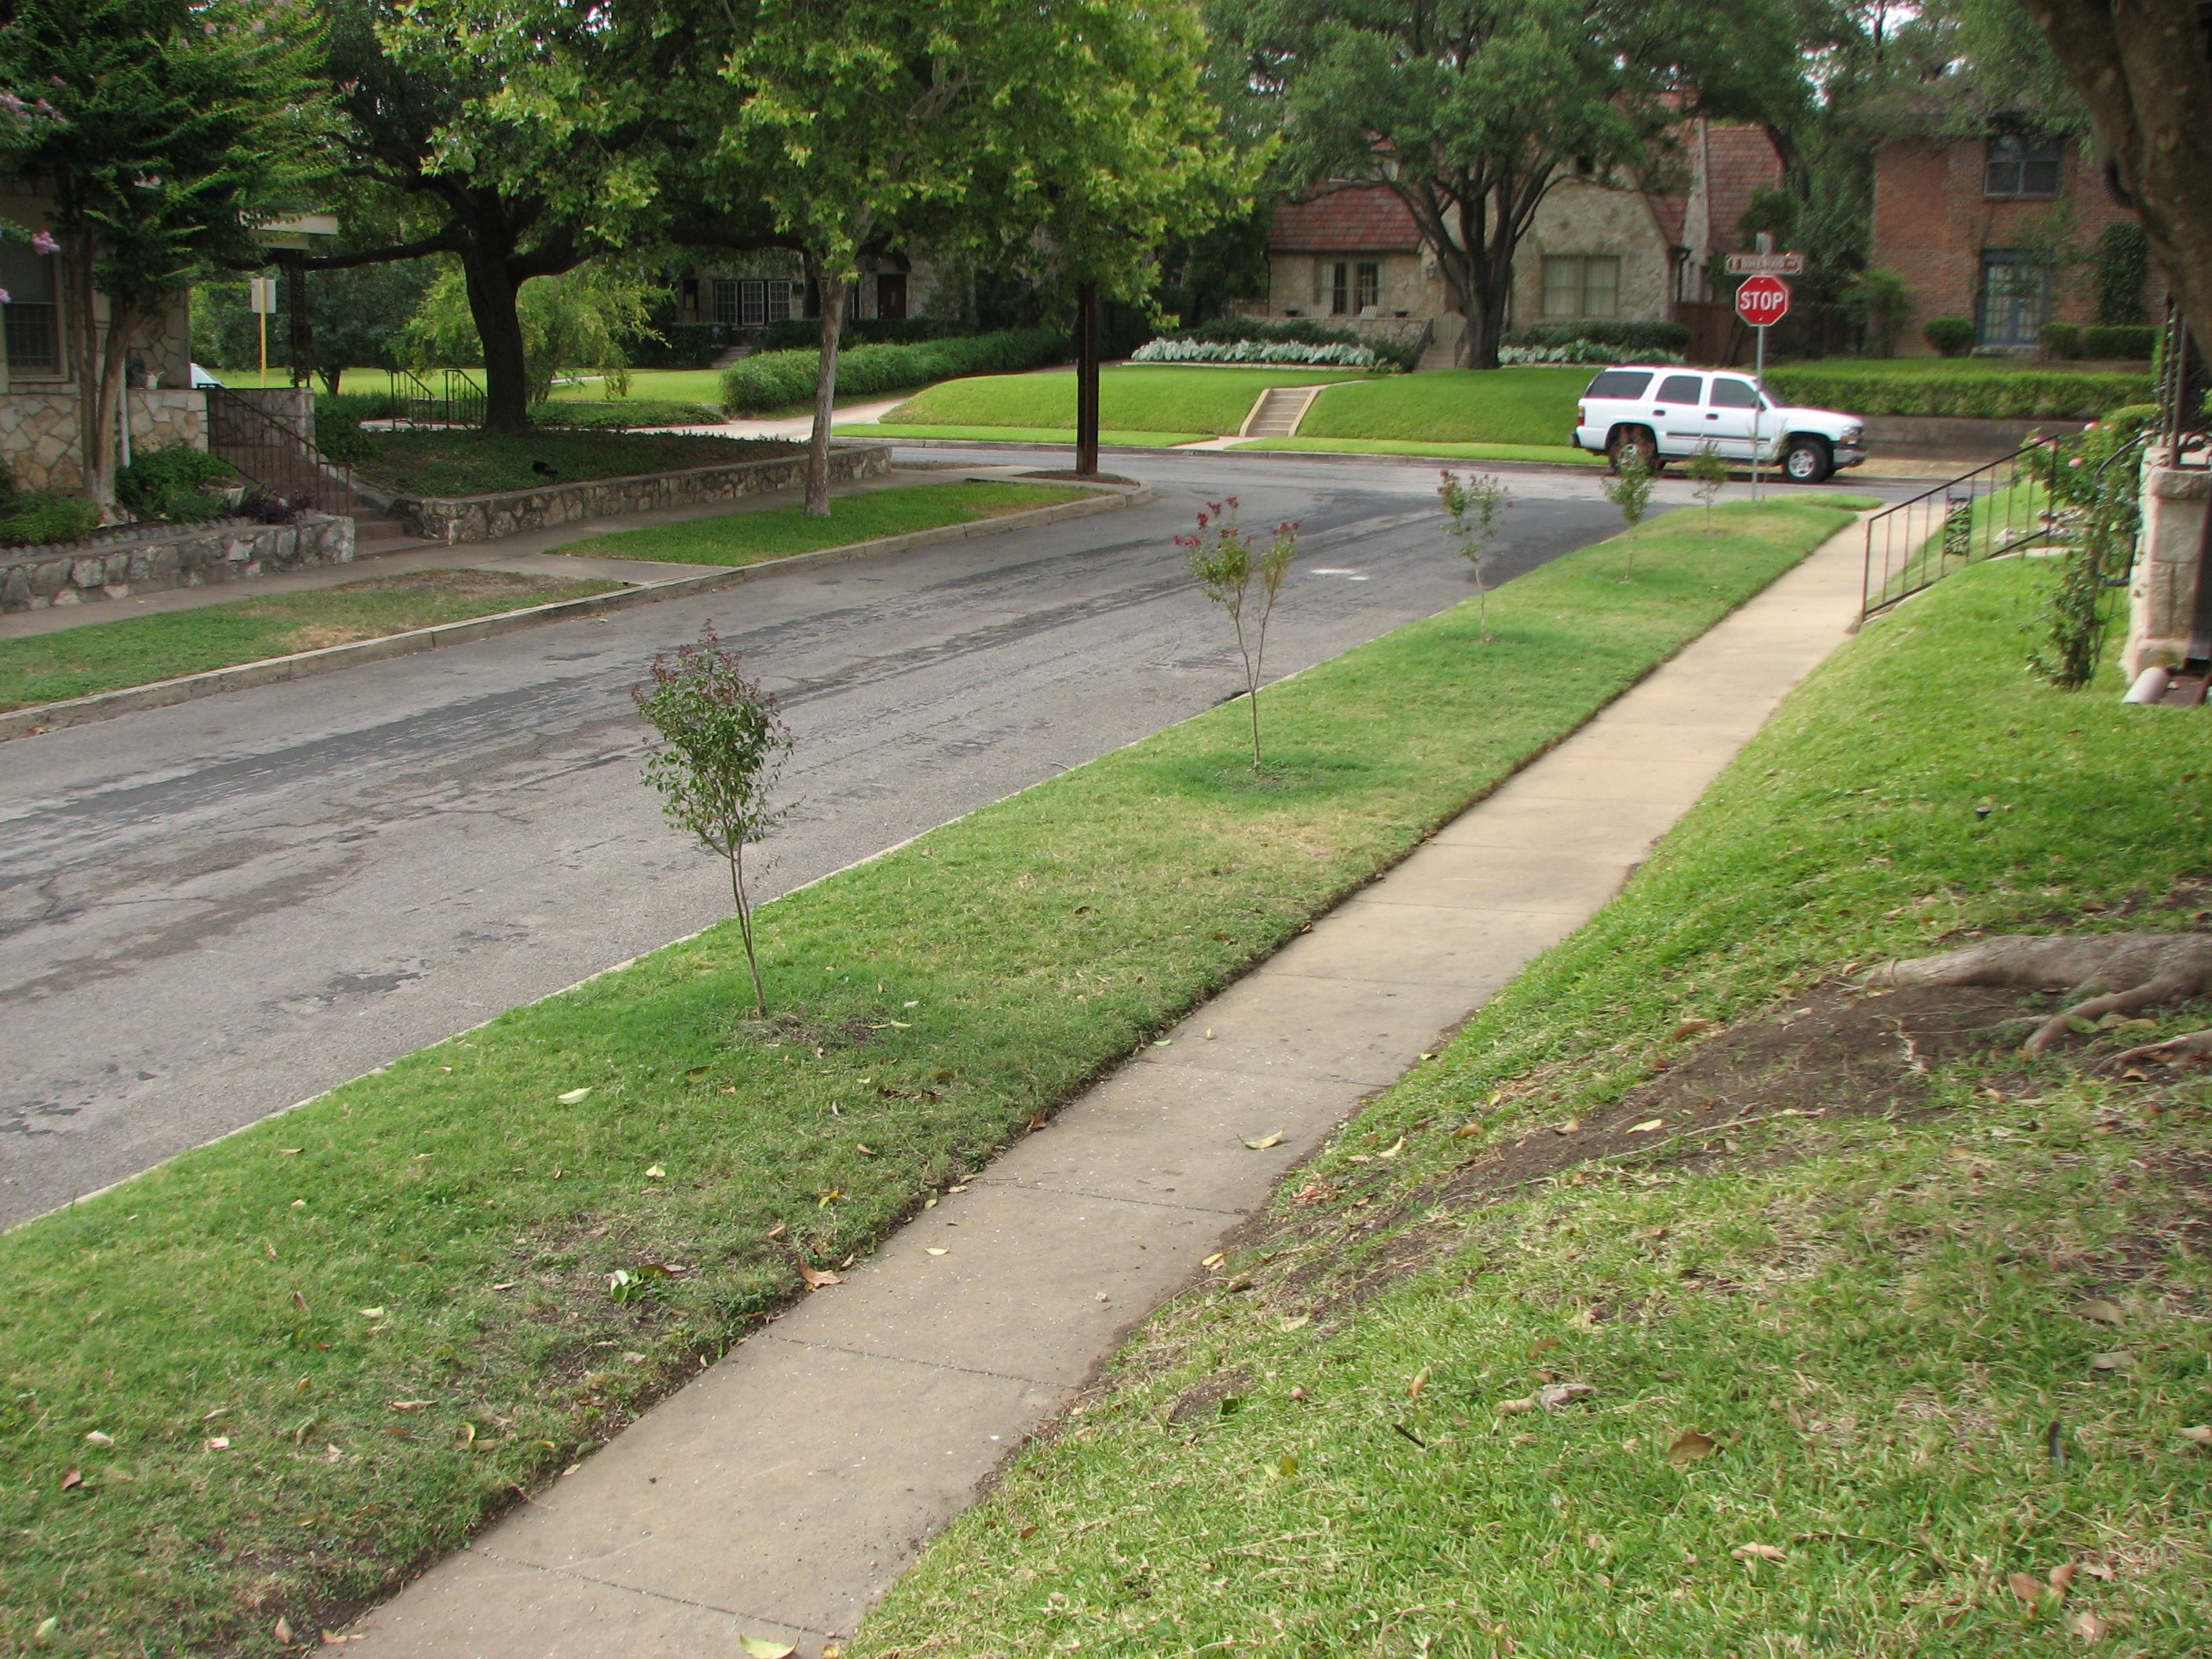 A narrow parking strip planted with turf and tree saplings between a residential street and a sidewalk